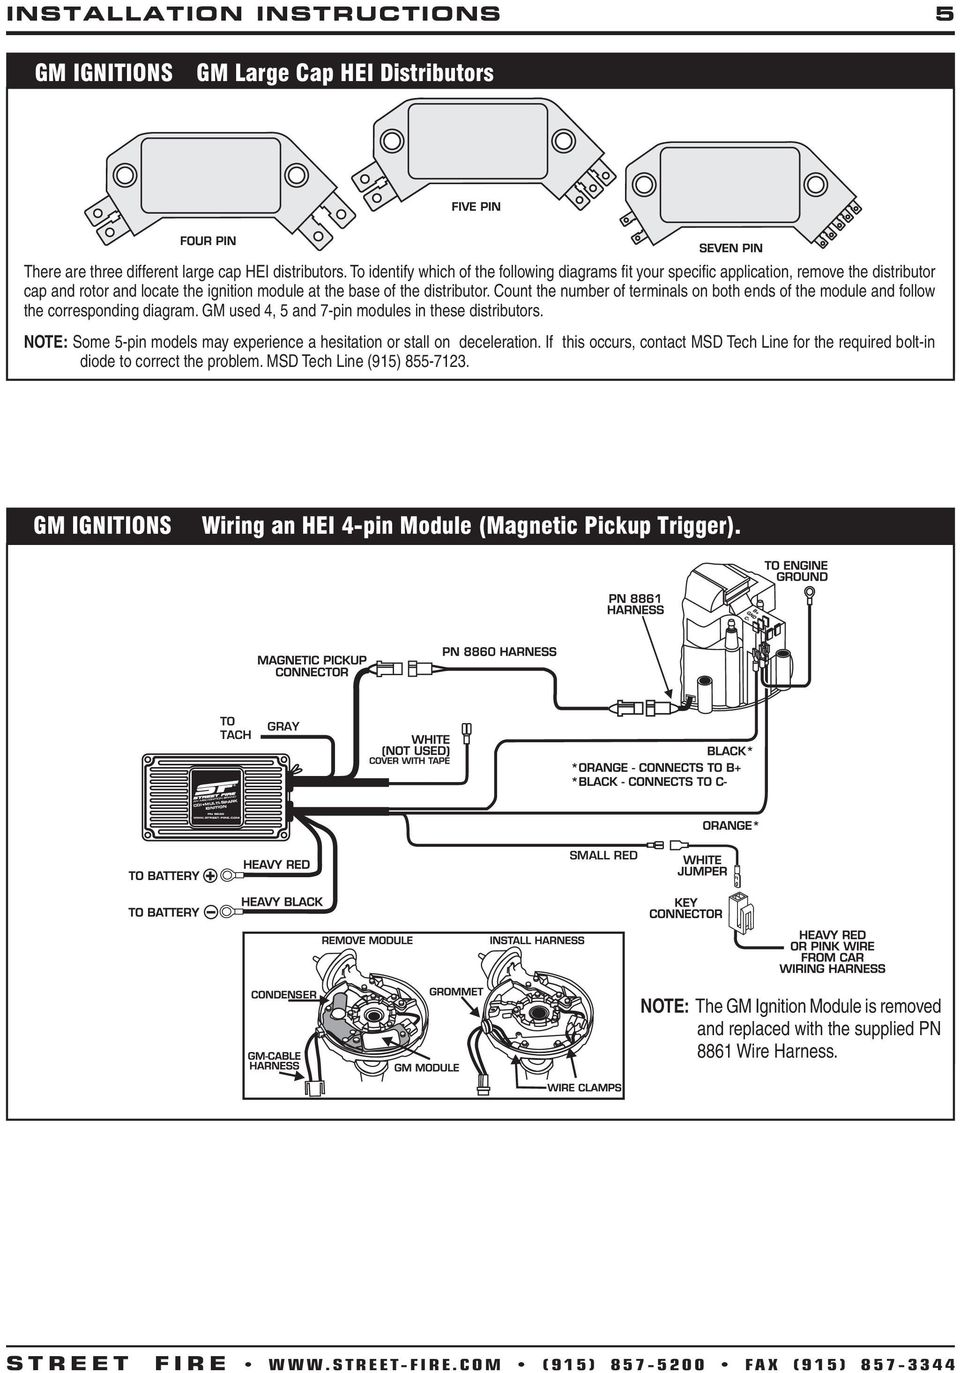 page 5 jpg msd street fire wiring diagram wiring diagram and hernes 960 x 1373